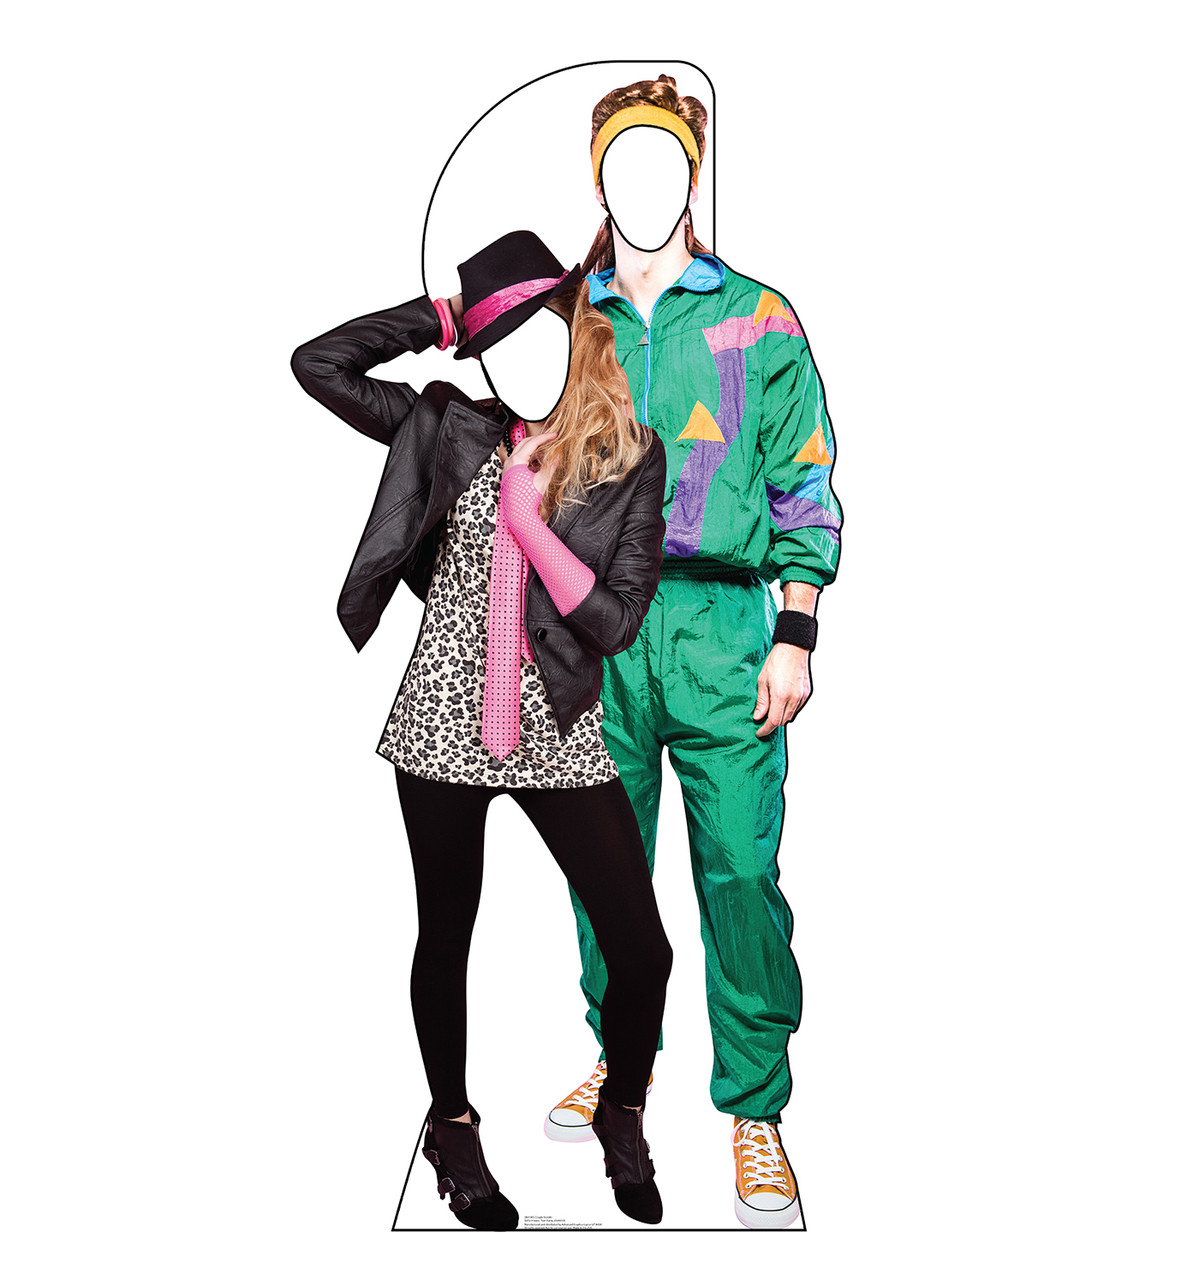 Life-size cardboard standin of 80's Couple.